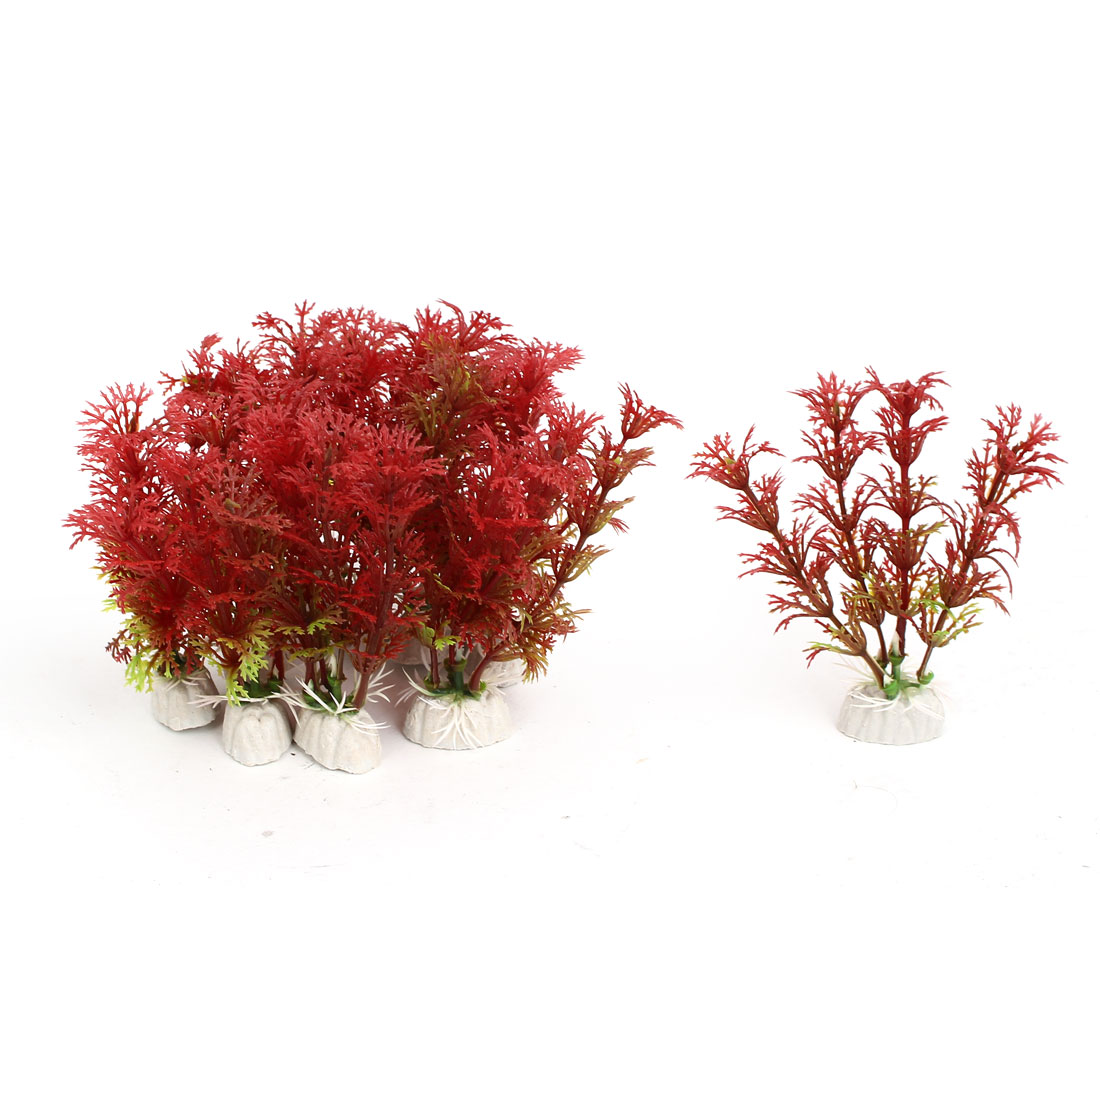 Aquarium Fish Tank Artificial Fake Water Plant Grass Decor Ornament Red 10Pcs